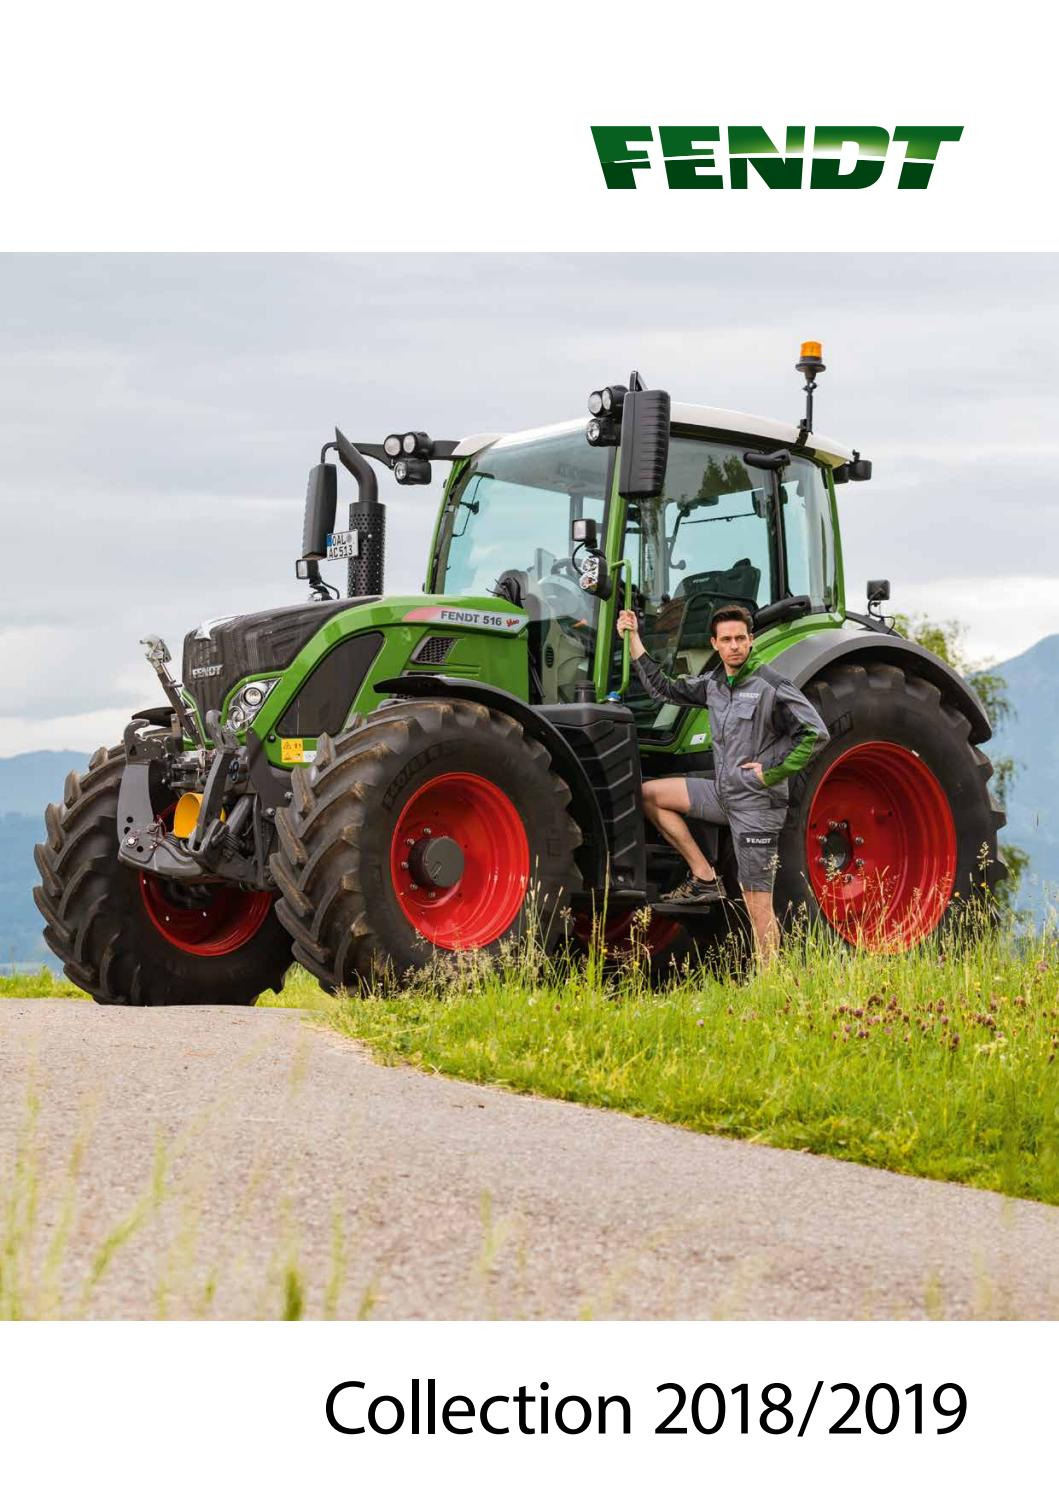 fendt collection 2018